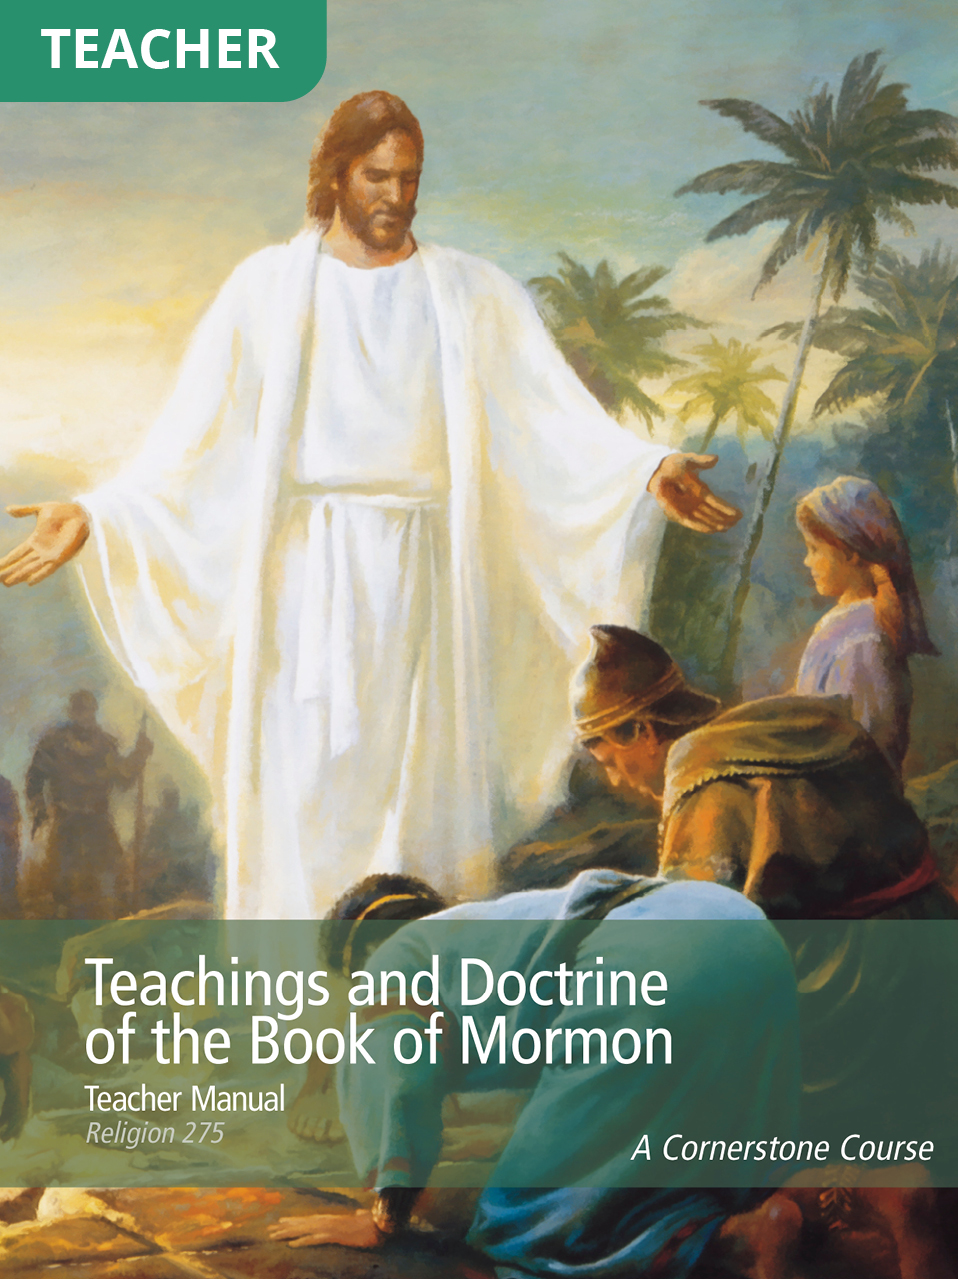 Teachings and Doctrine of the Book of Mormon Teacher Manual (Rel 275)